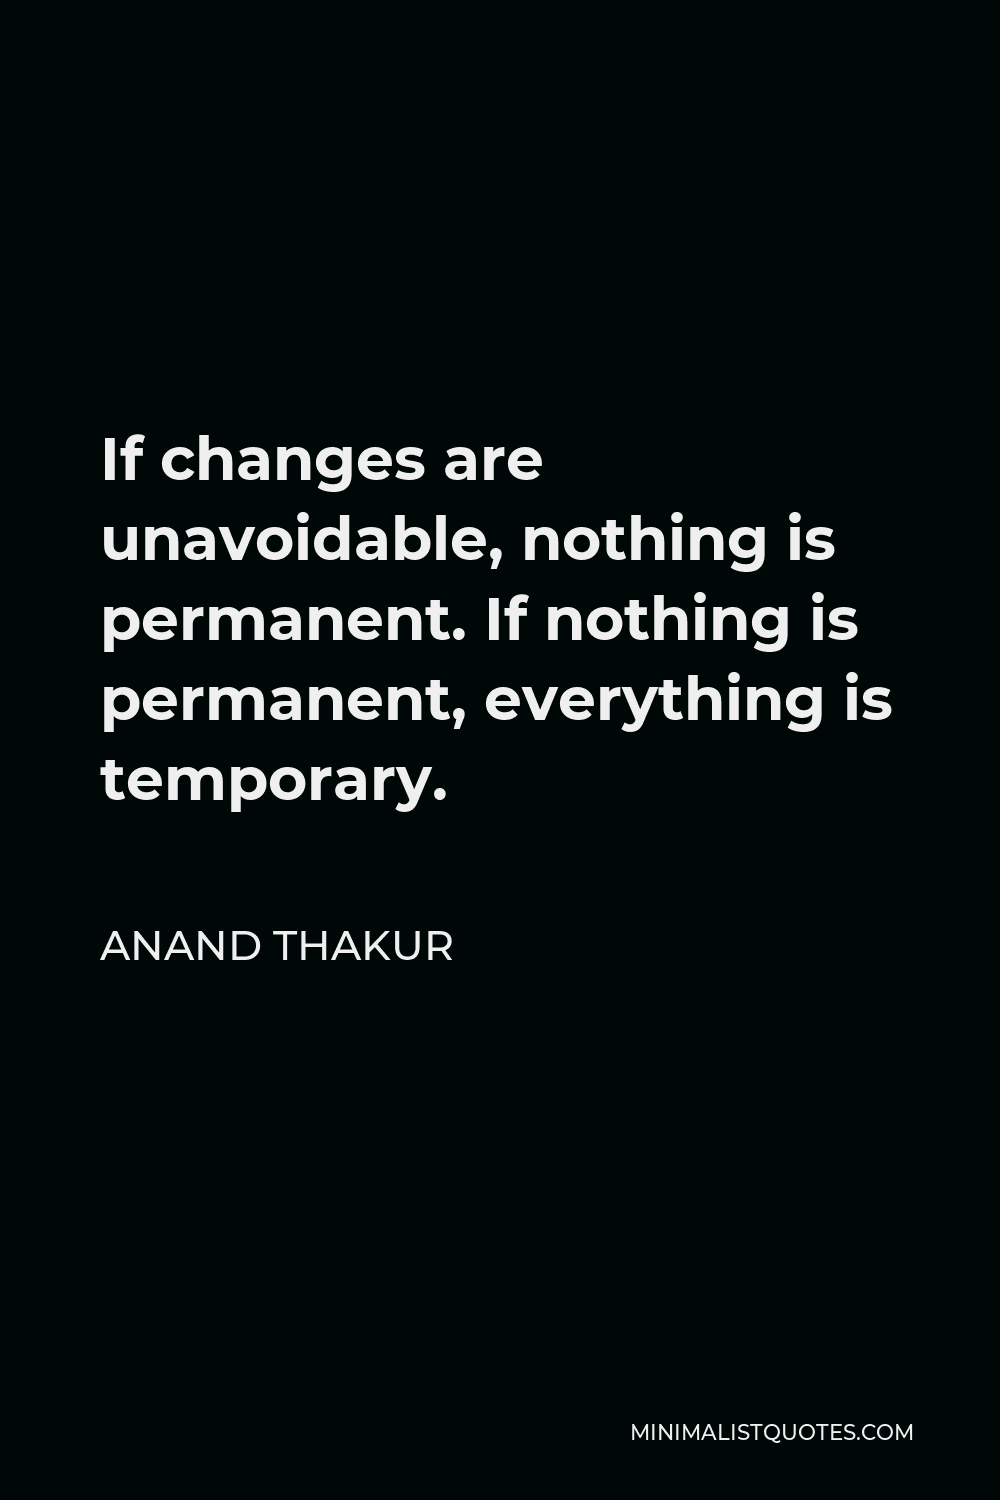 Anand Thakur Quote - If changes are unavoidable, nothing is permanent. If nothing is permanent, everything is temporary.